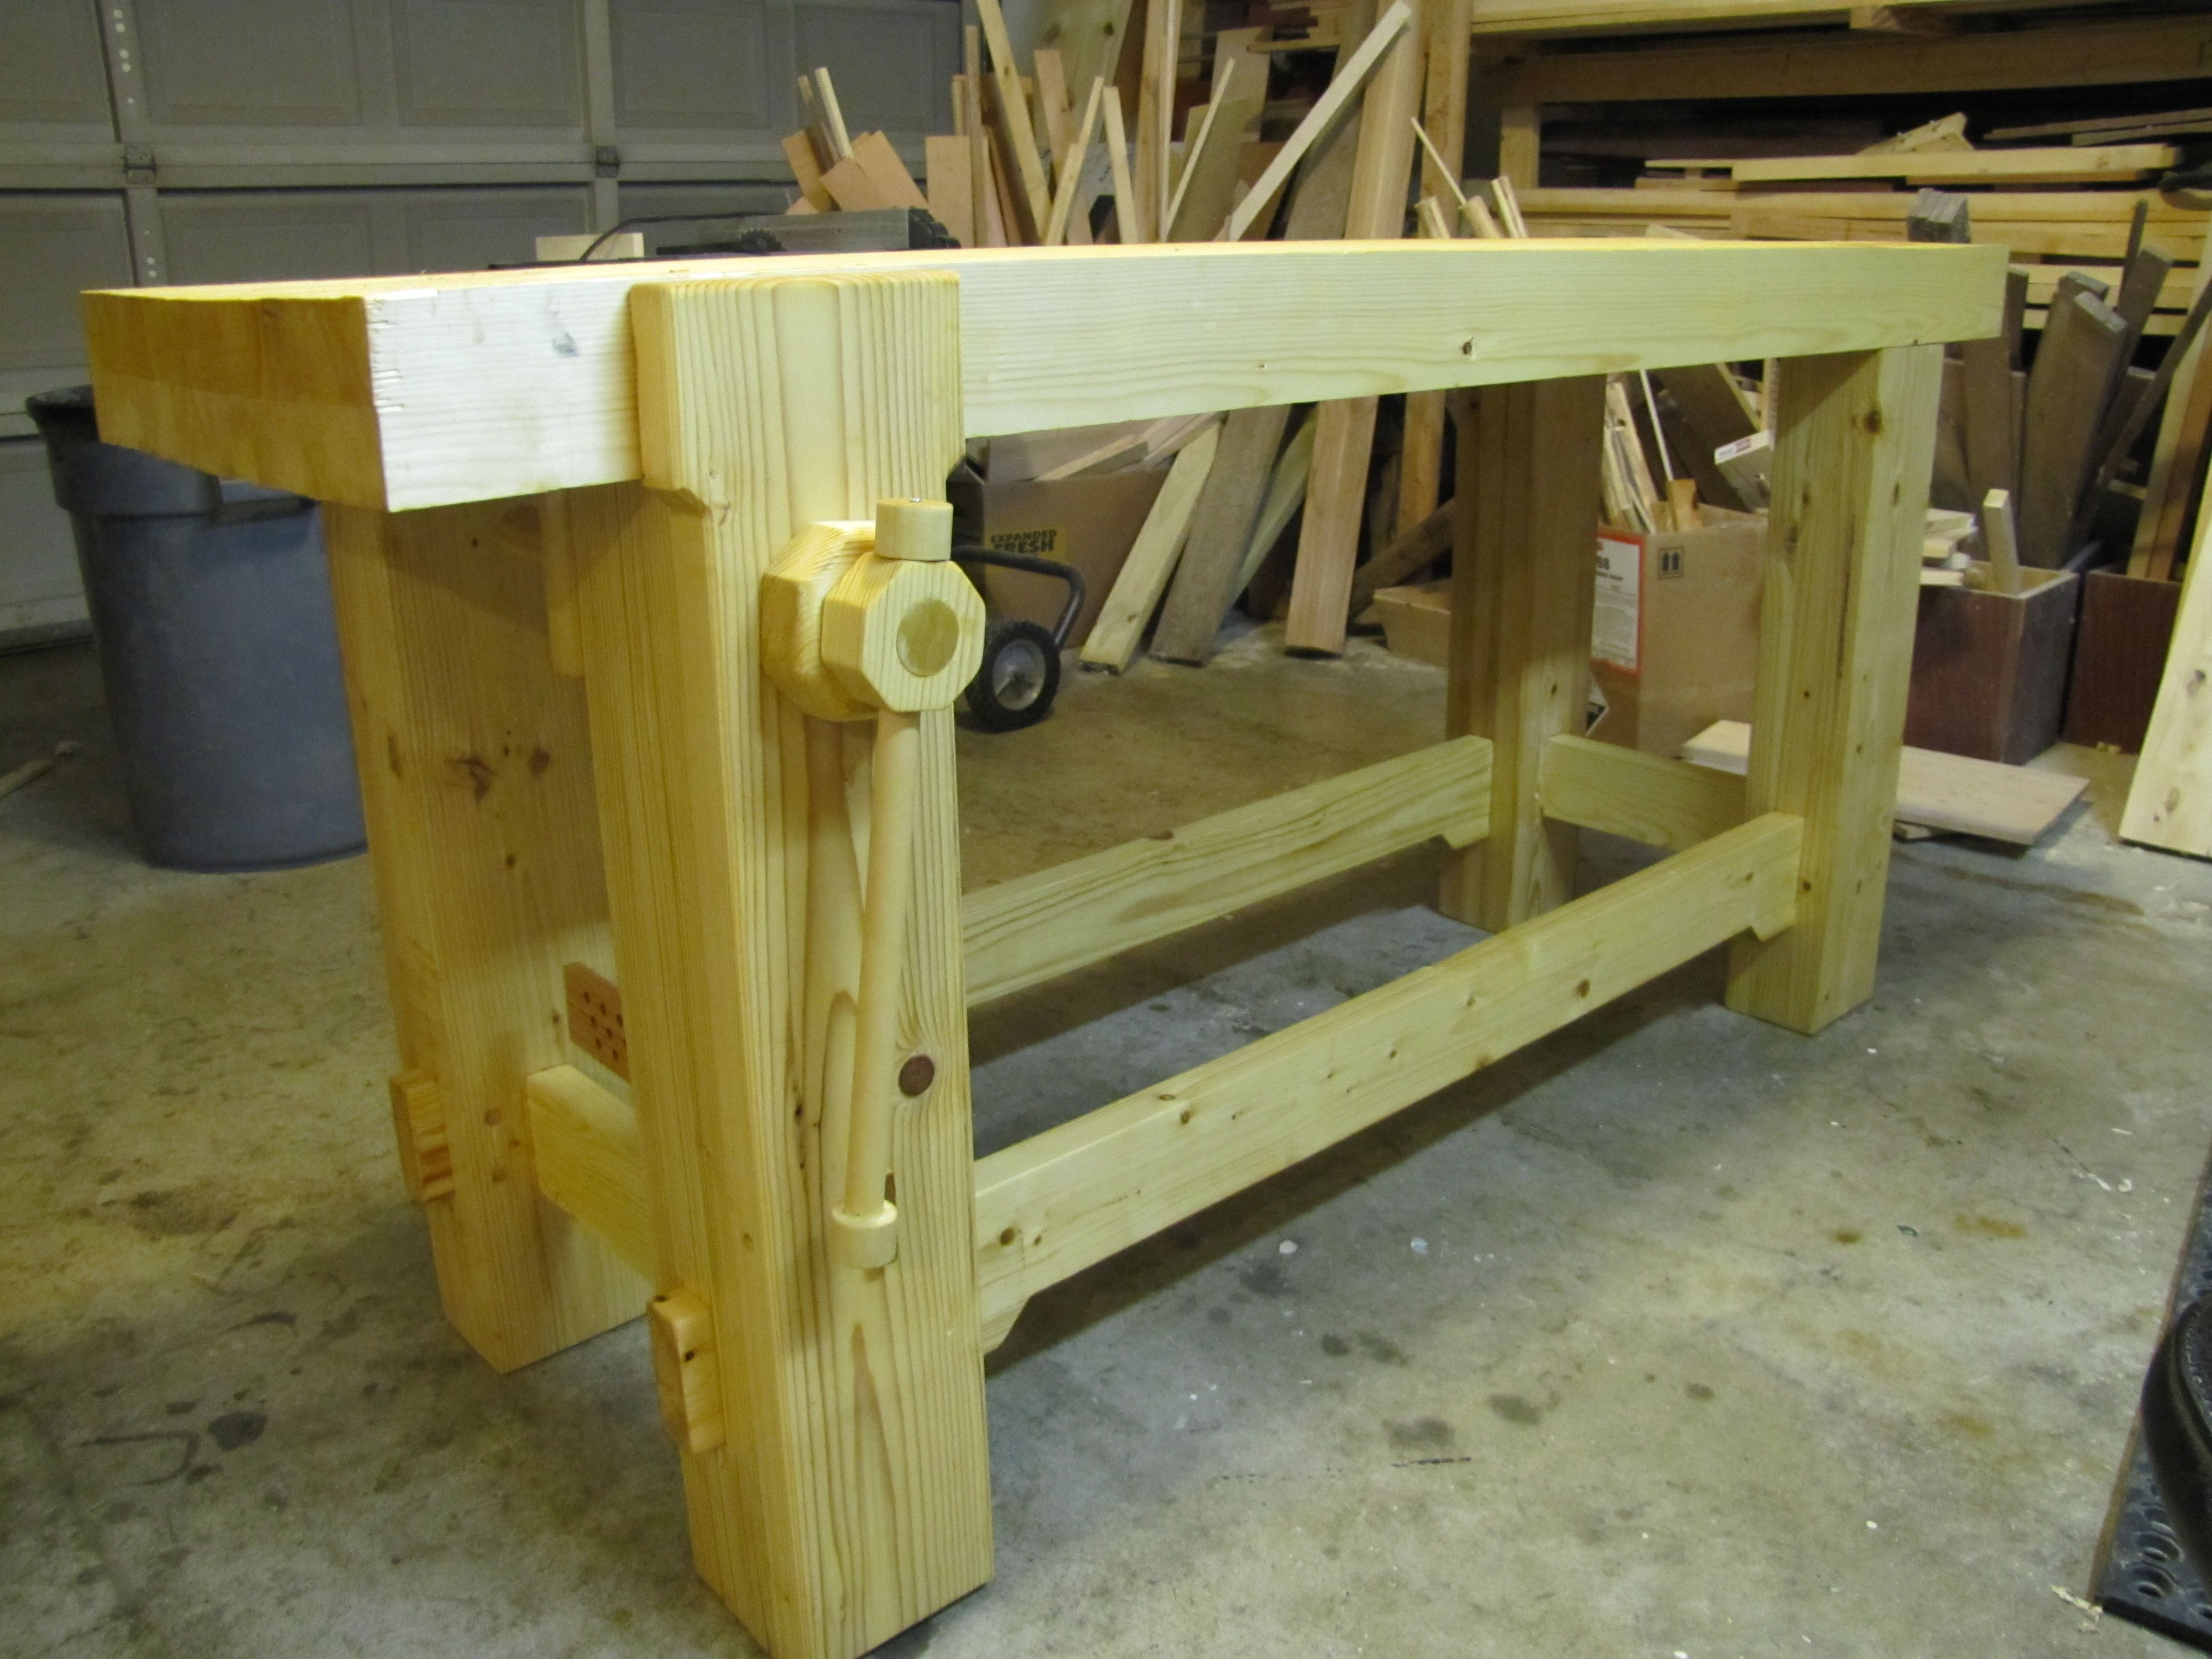 Prime Roubo Style Workbench With Leg Vise Jason Sinco Woodworks Machost Co Dining Chair Design Ideas Machostcouk